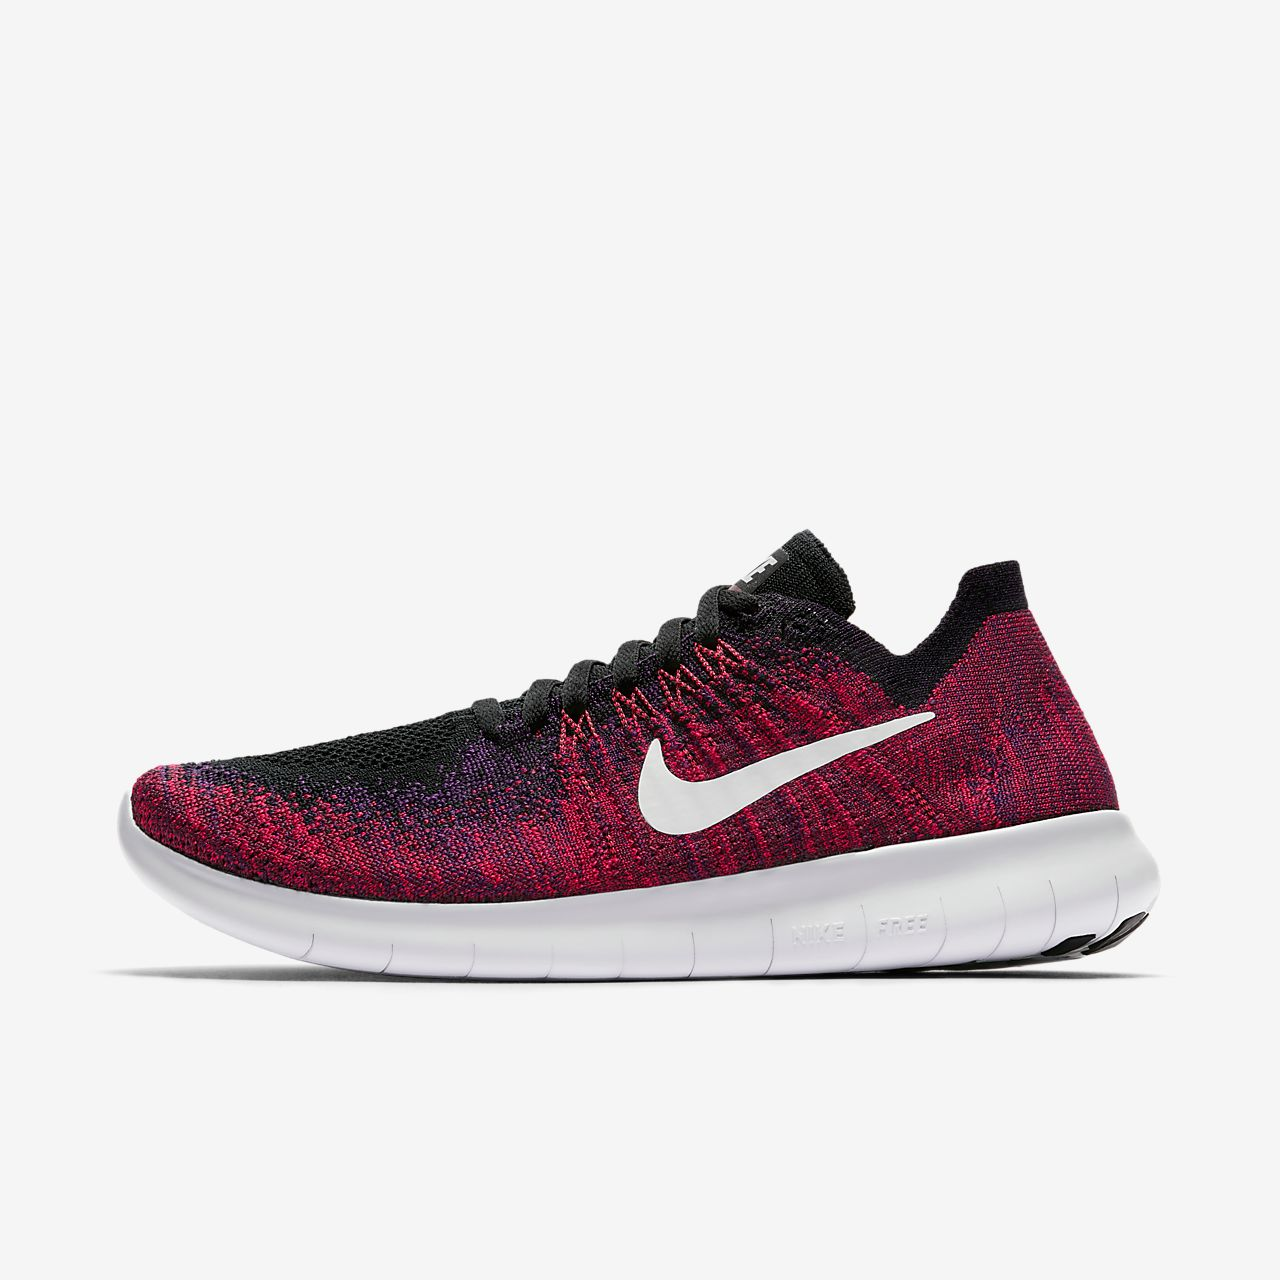 half off 97fb7 e1f25 closeout nike free rn flyknit kids running shoe 139c0 af0ed